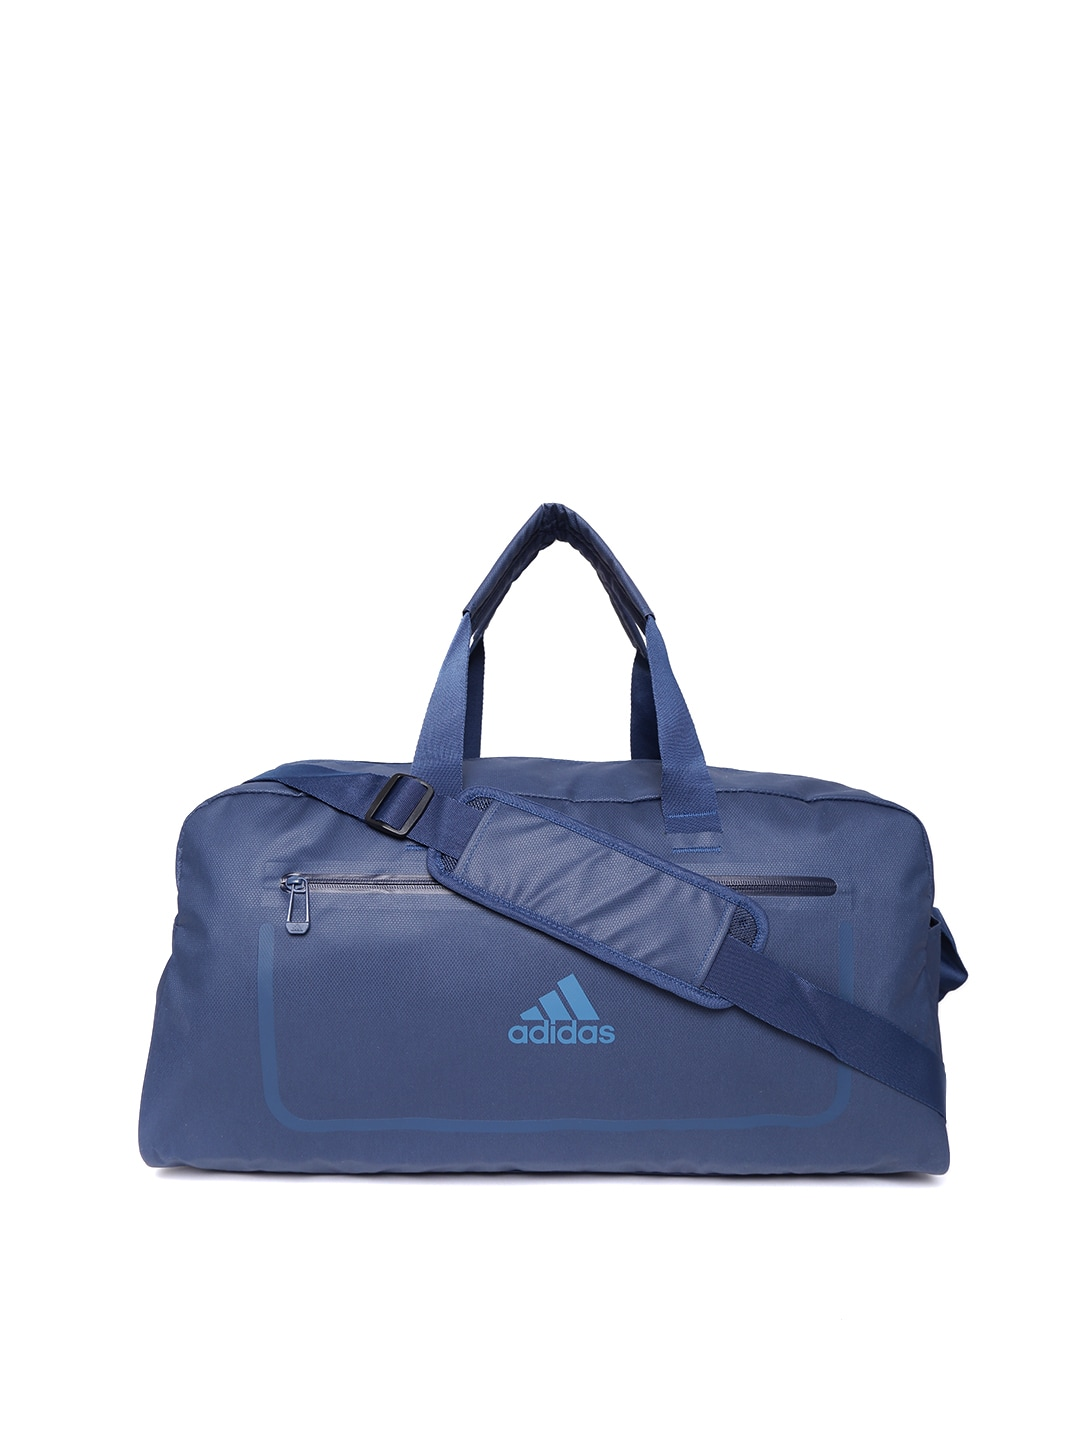 4173390f4190 Adidas Bags Sports Sandal - Buy Adidas Bags Sports Sandal online in India